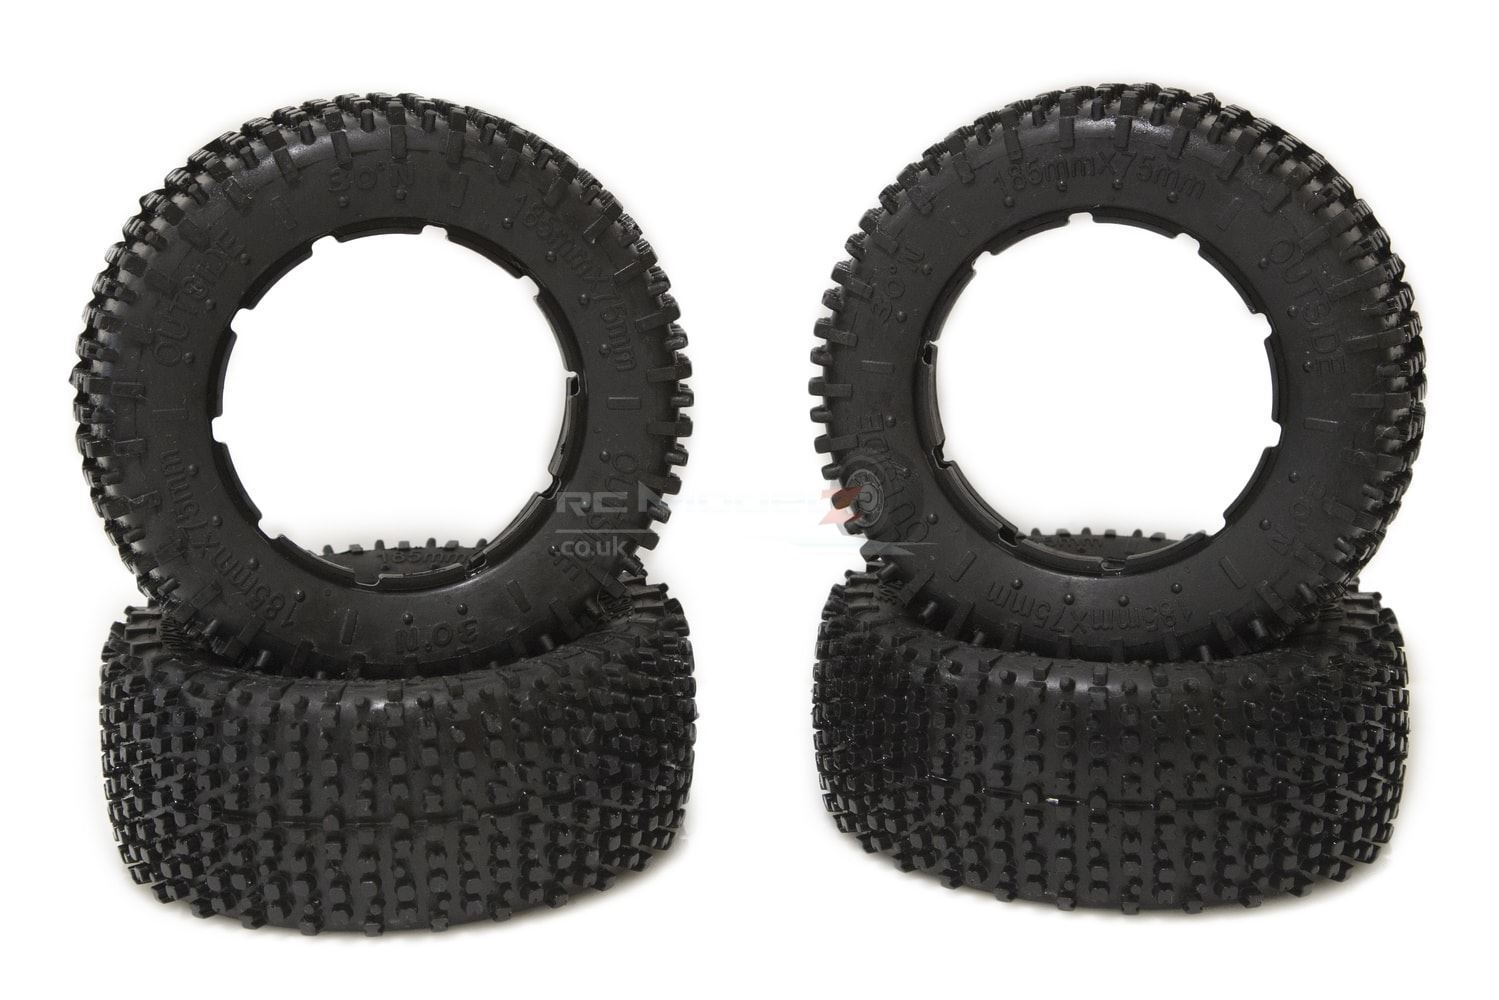 30 Degree North 'Signature' Mini-Pin Tyre Set for KMX2, Losi 5ive-T (185x75mm)